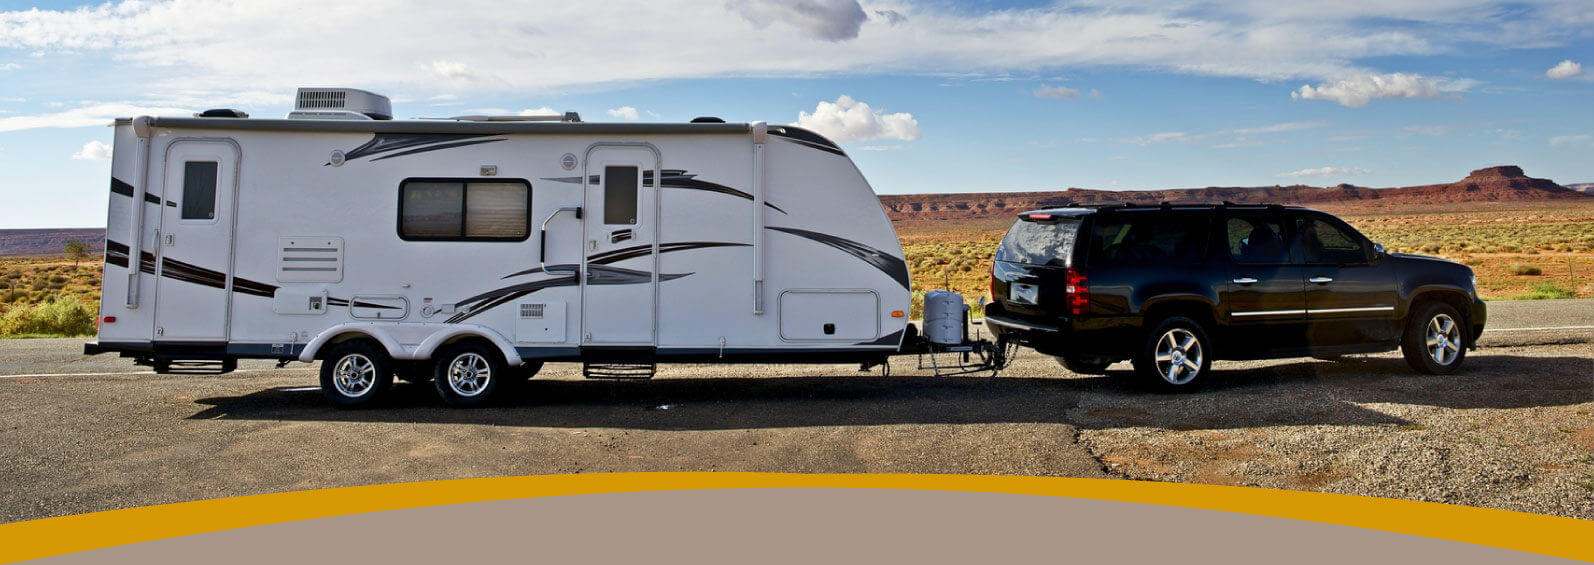 RVs For Sale | New & Used | Grand Junction RV Dealer